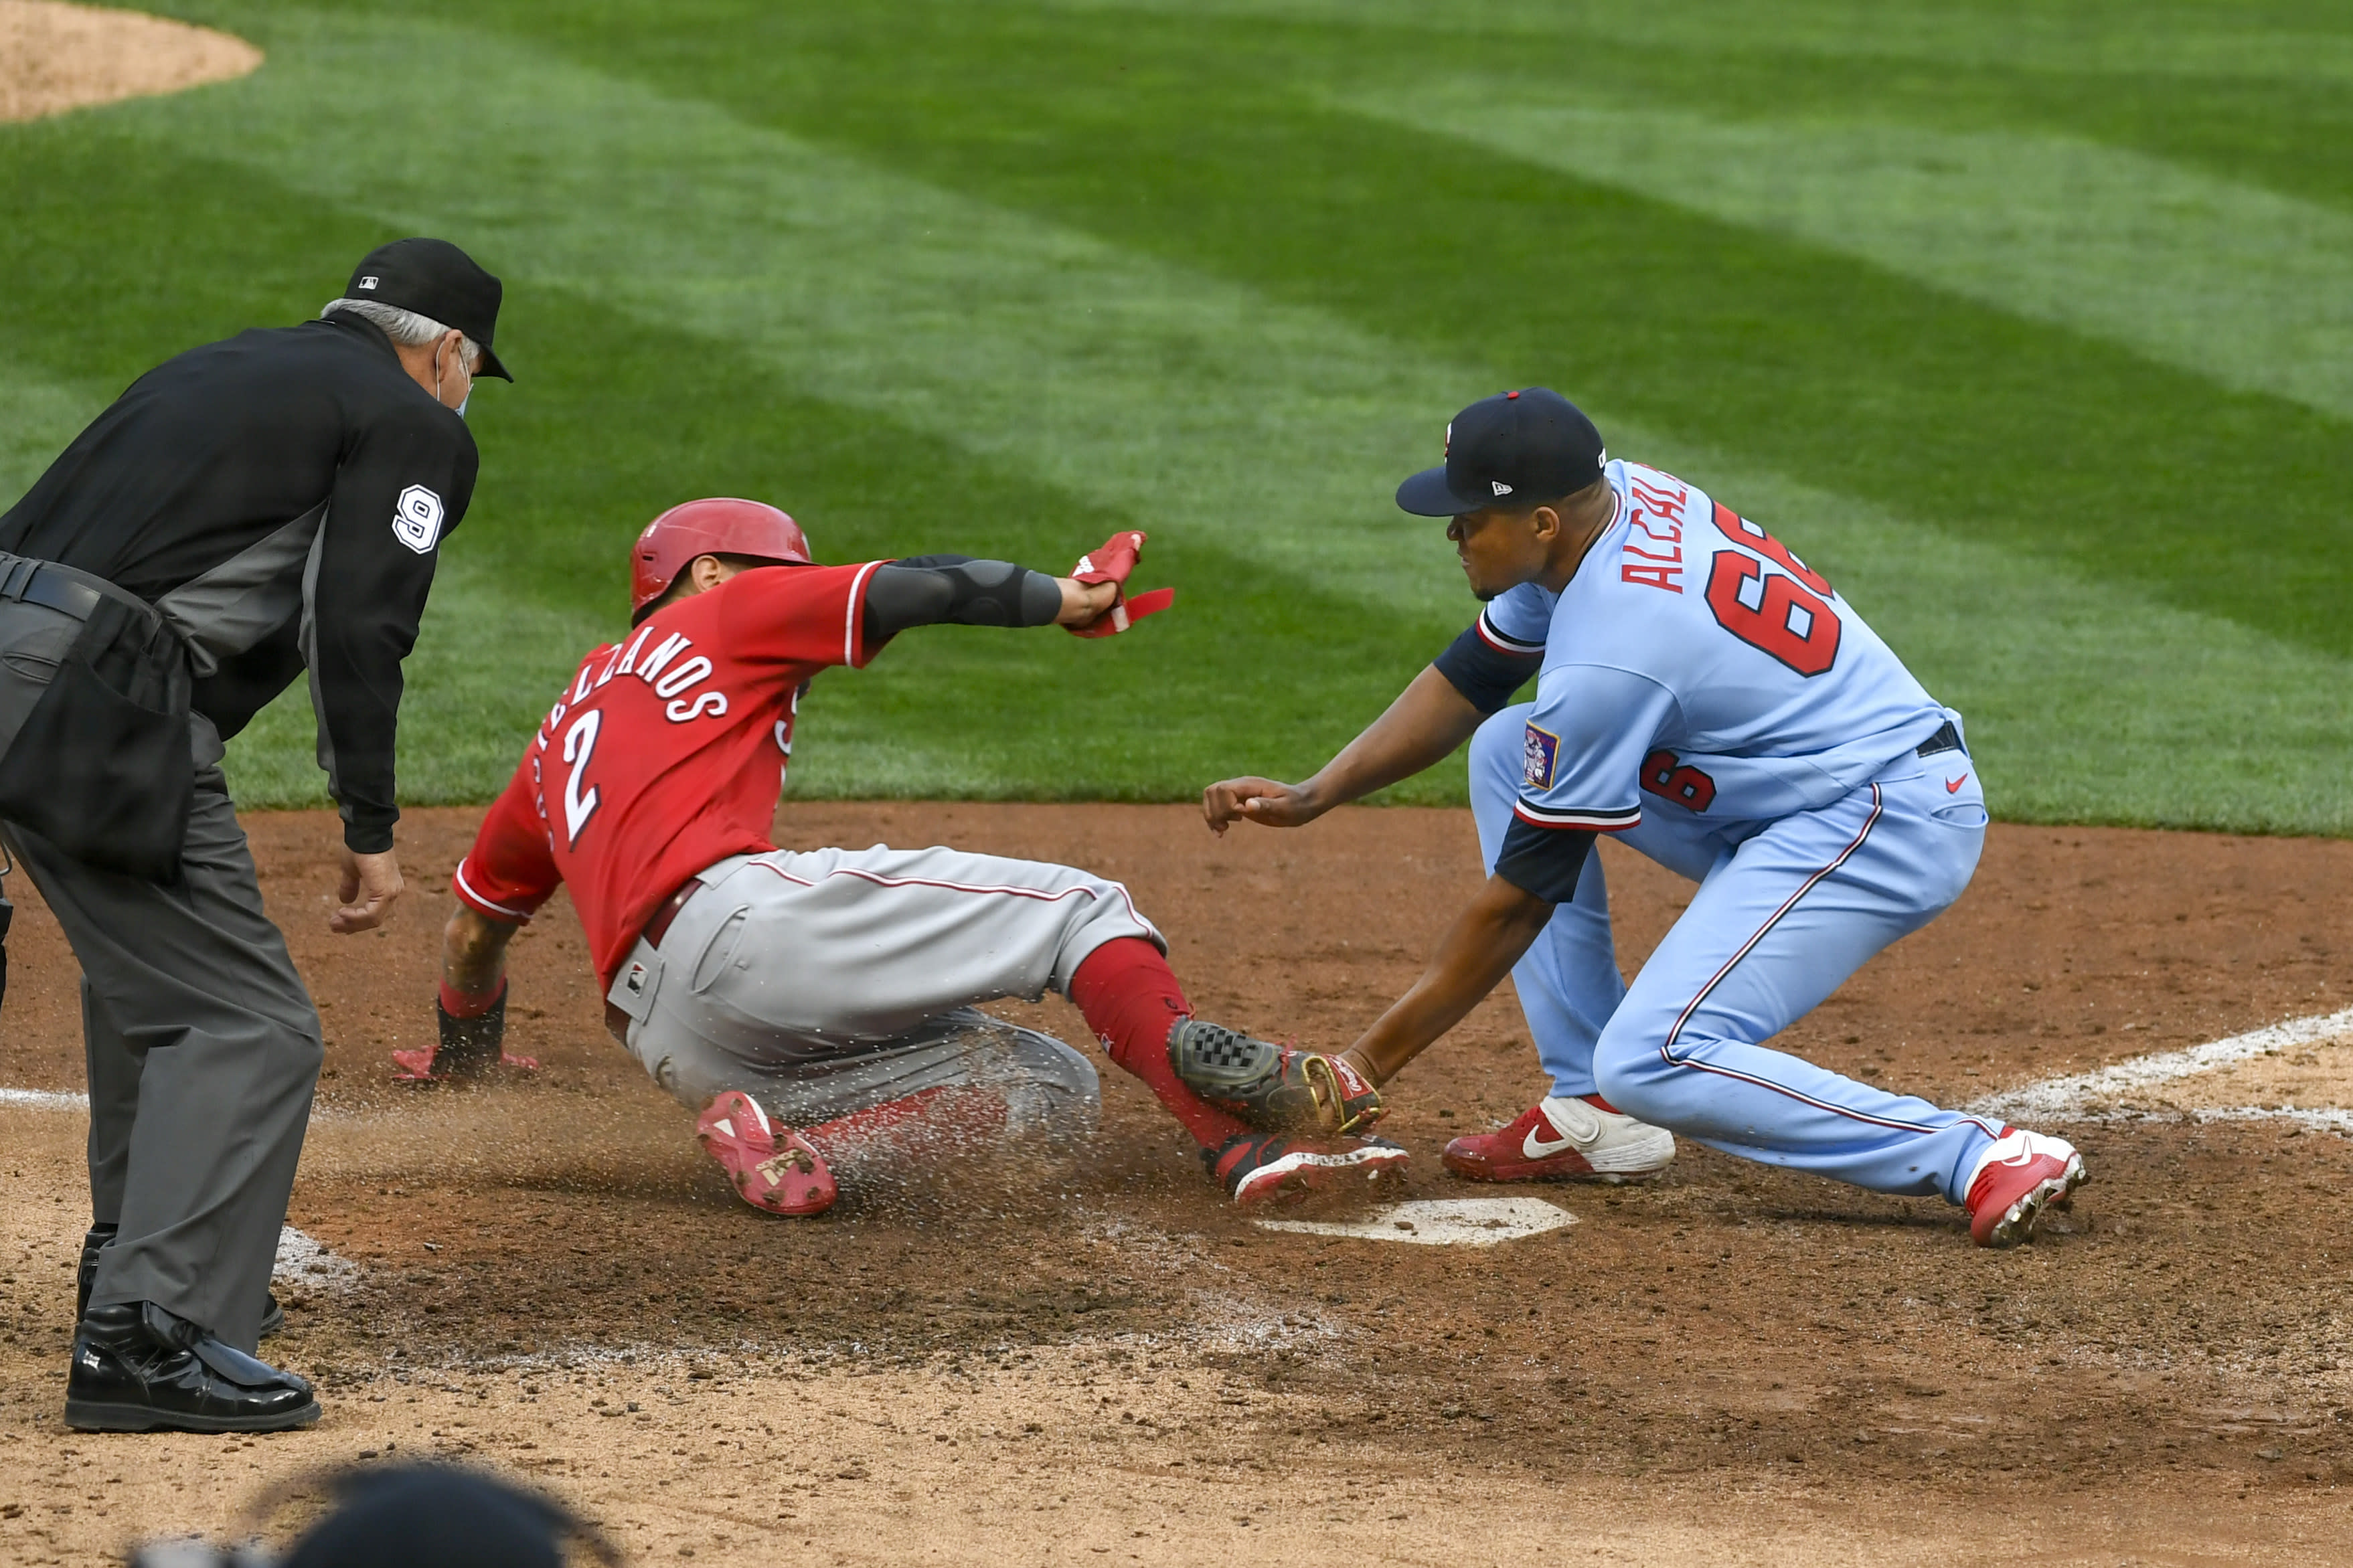 Minnesota Twins pitcher Jorge Alcala, right, tags out Cincinnati Reds' Nick Castellanos as he tries to steal home on a wild pitch during the tenth inning of a baseball game Sunday, Sept. 27, 2020, in Minneapolis. The Reds won 5-3. (AP Photo/Craig Lassig)